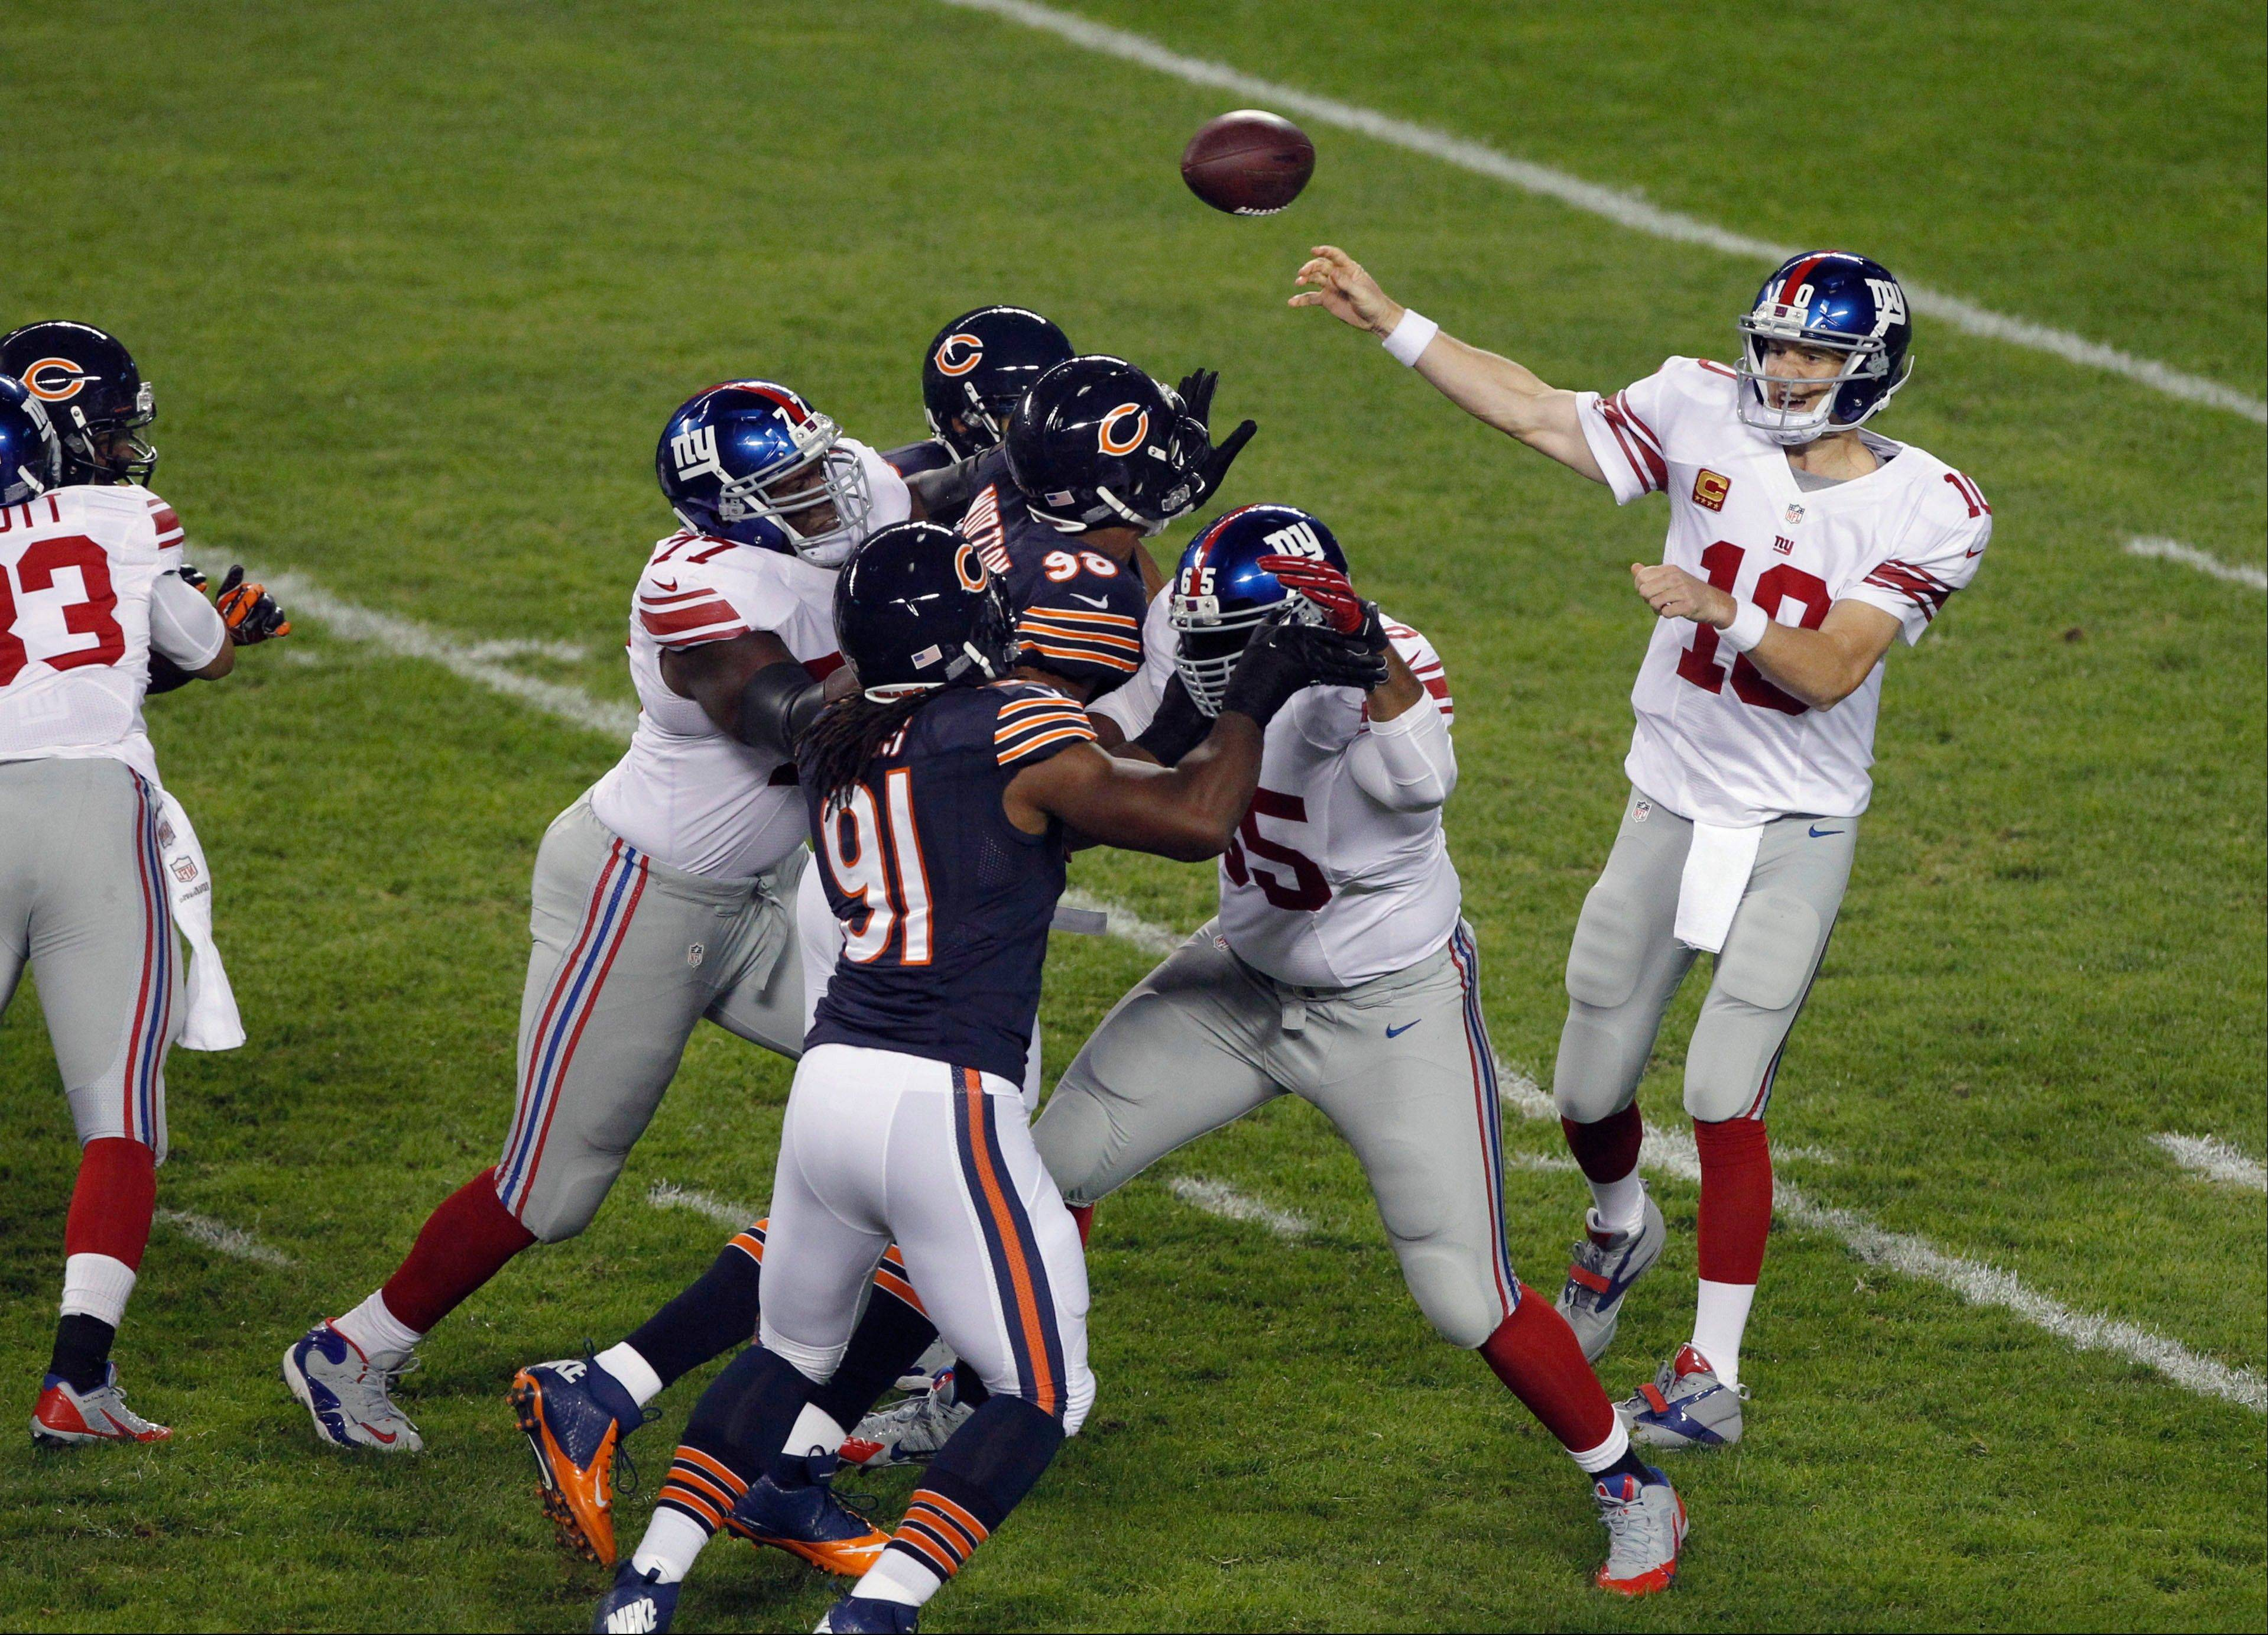 New York Giants quarterback Eli Manning (10) throws a pass which was intercepted by Chicago Bears defensive back Zack Bowman in the first half of an NFL football game, Thursday, Oct. 10, 2013, in Chicago.